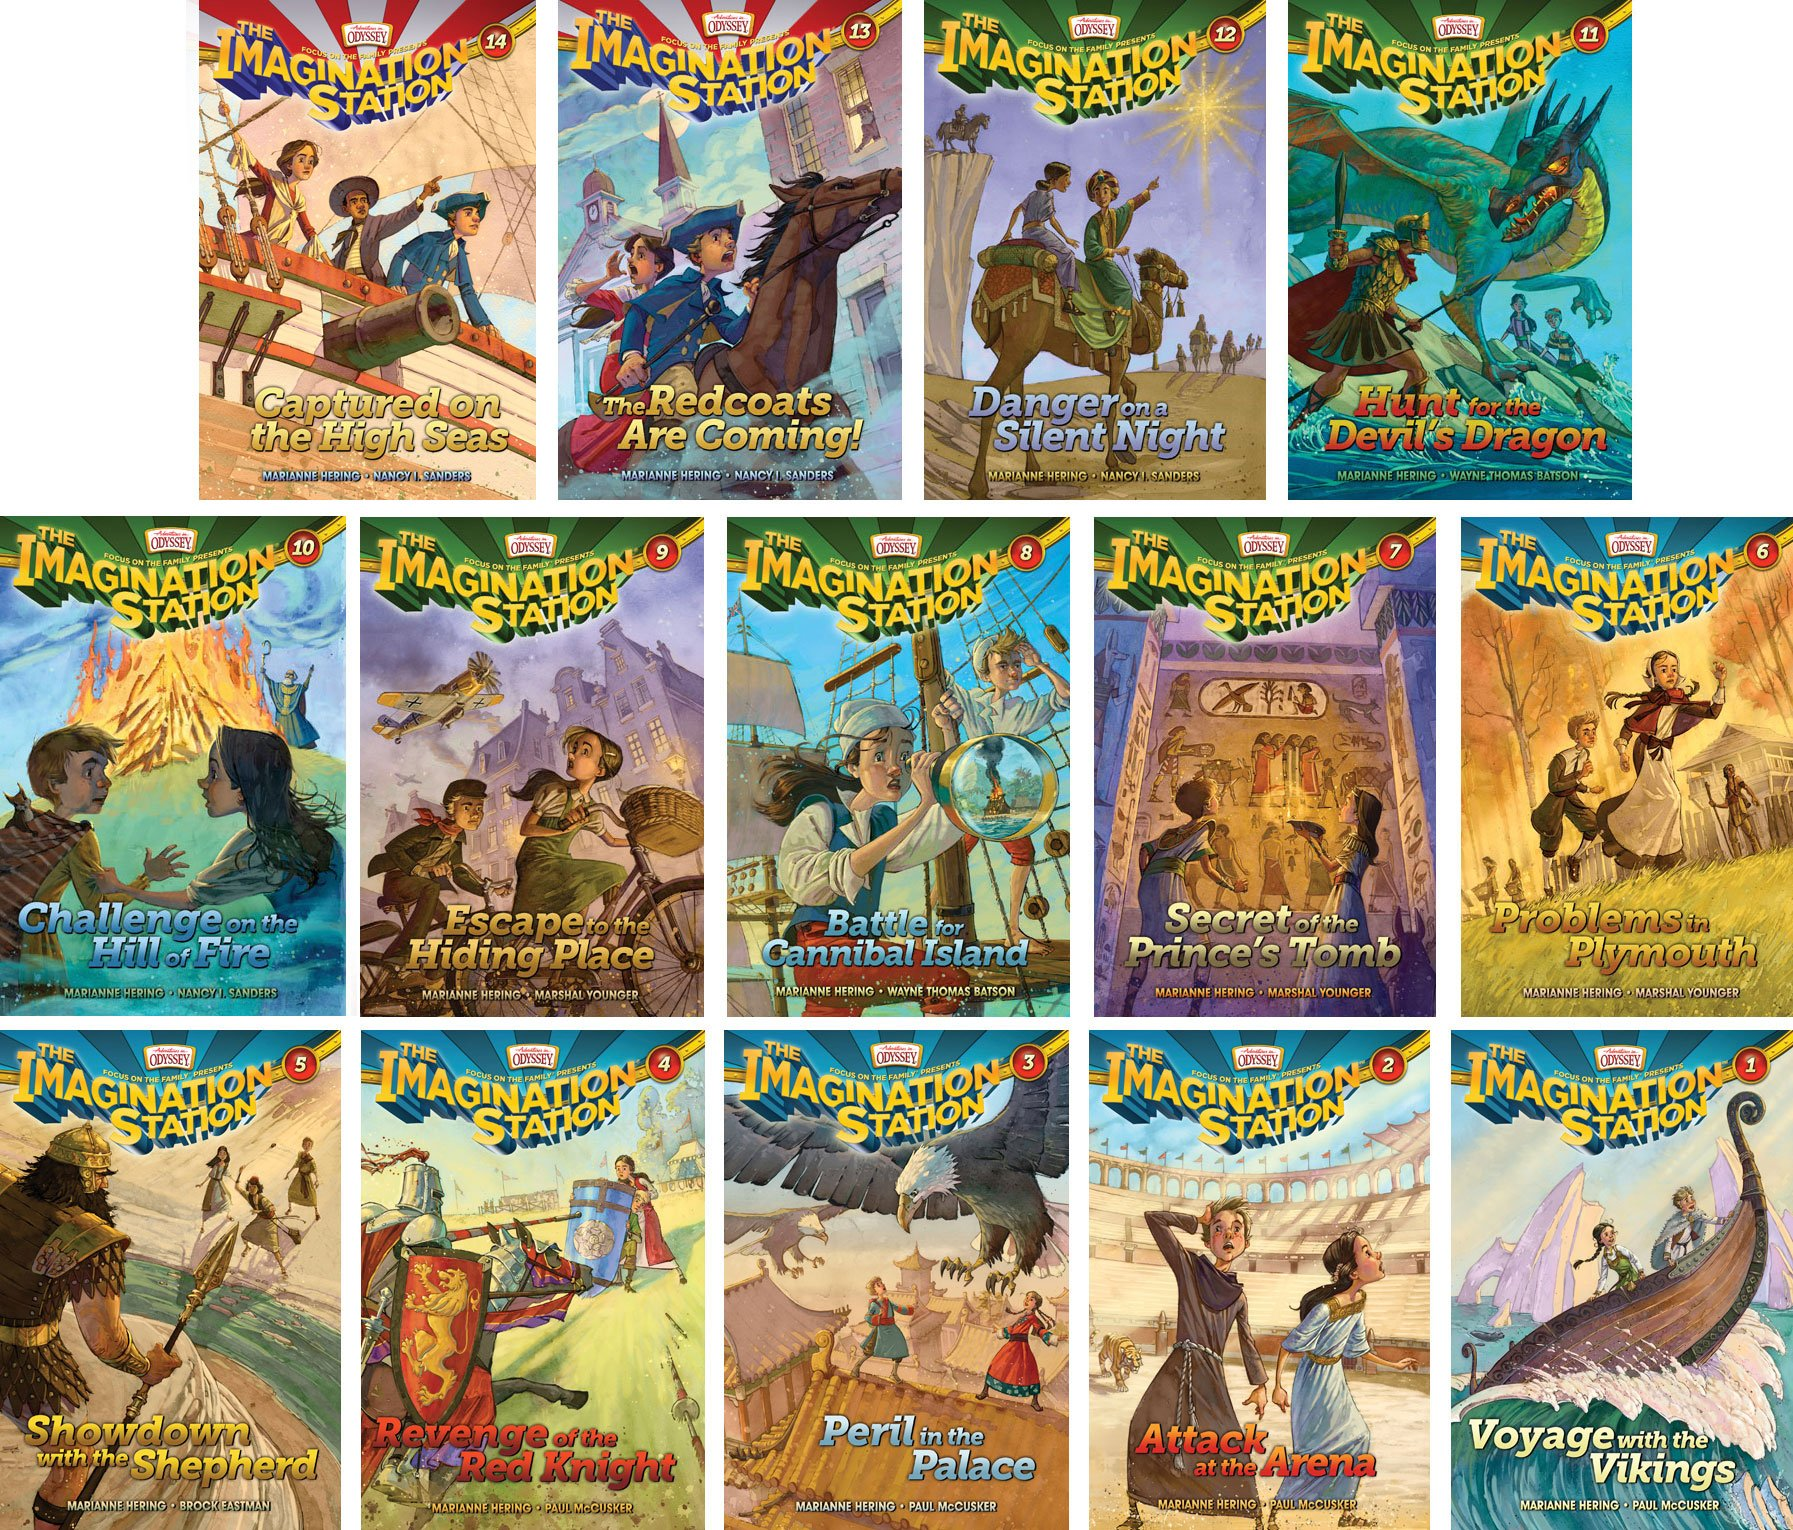 Read Online Imagination Station Series - Adventures in Odyssey - Set of 14 - Volumes #1-14 Including Captured on the High Seas, the Redcoats Are Coming, Danger on a Silent Night, Hunt for the Devil's Dragon, Challenge on the Hill of Fire and More ebook